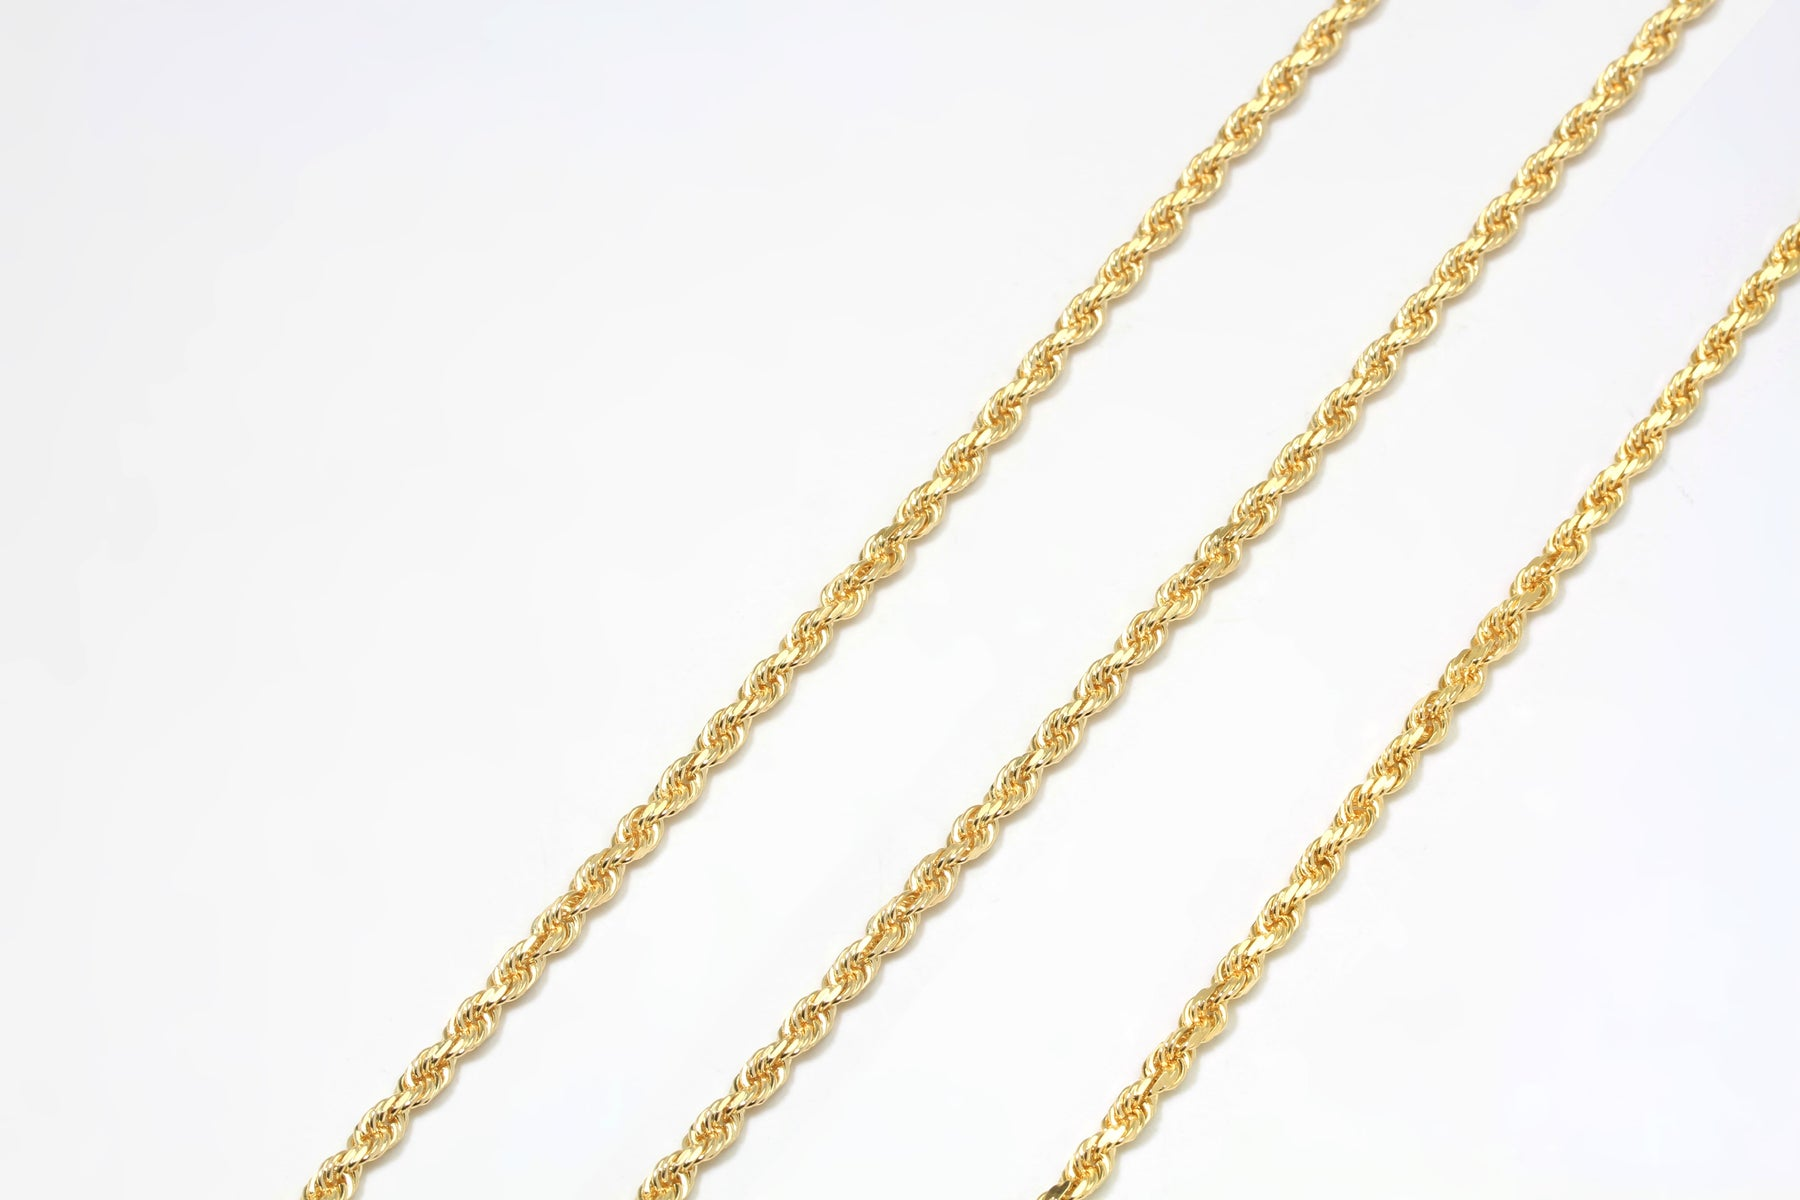 ball mainwh diamond unisex cut bead chains chain and gold